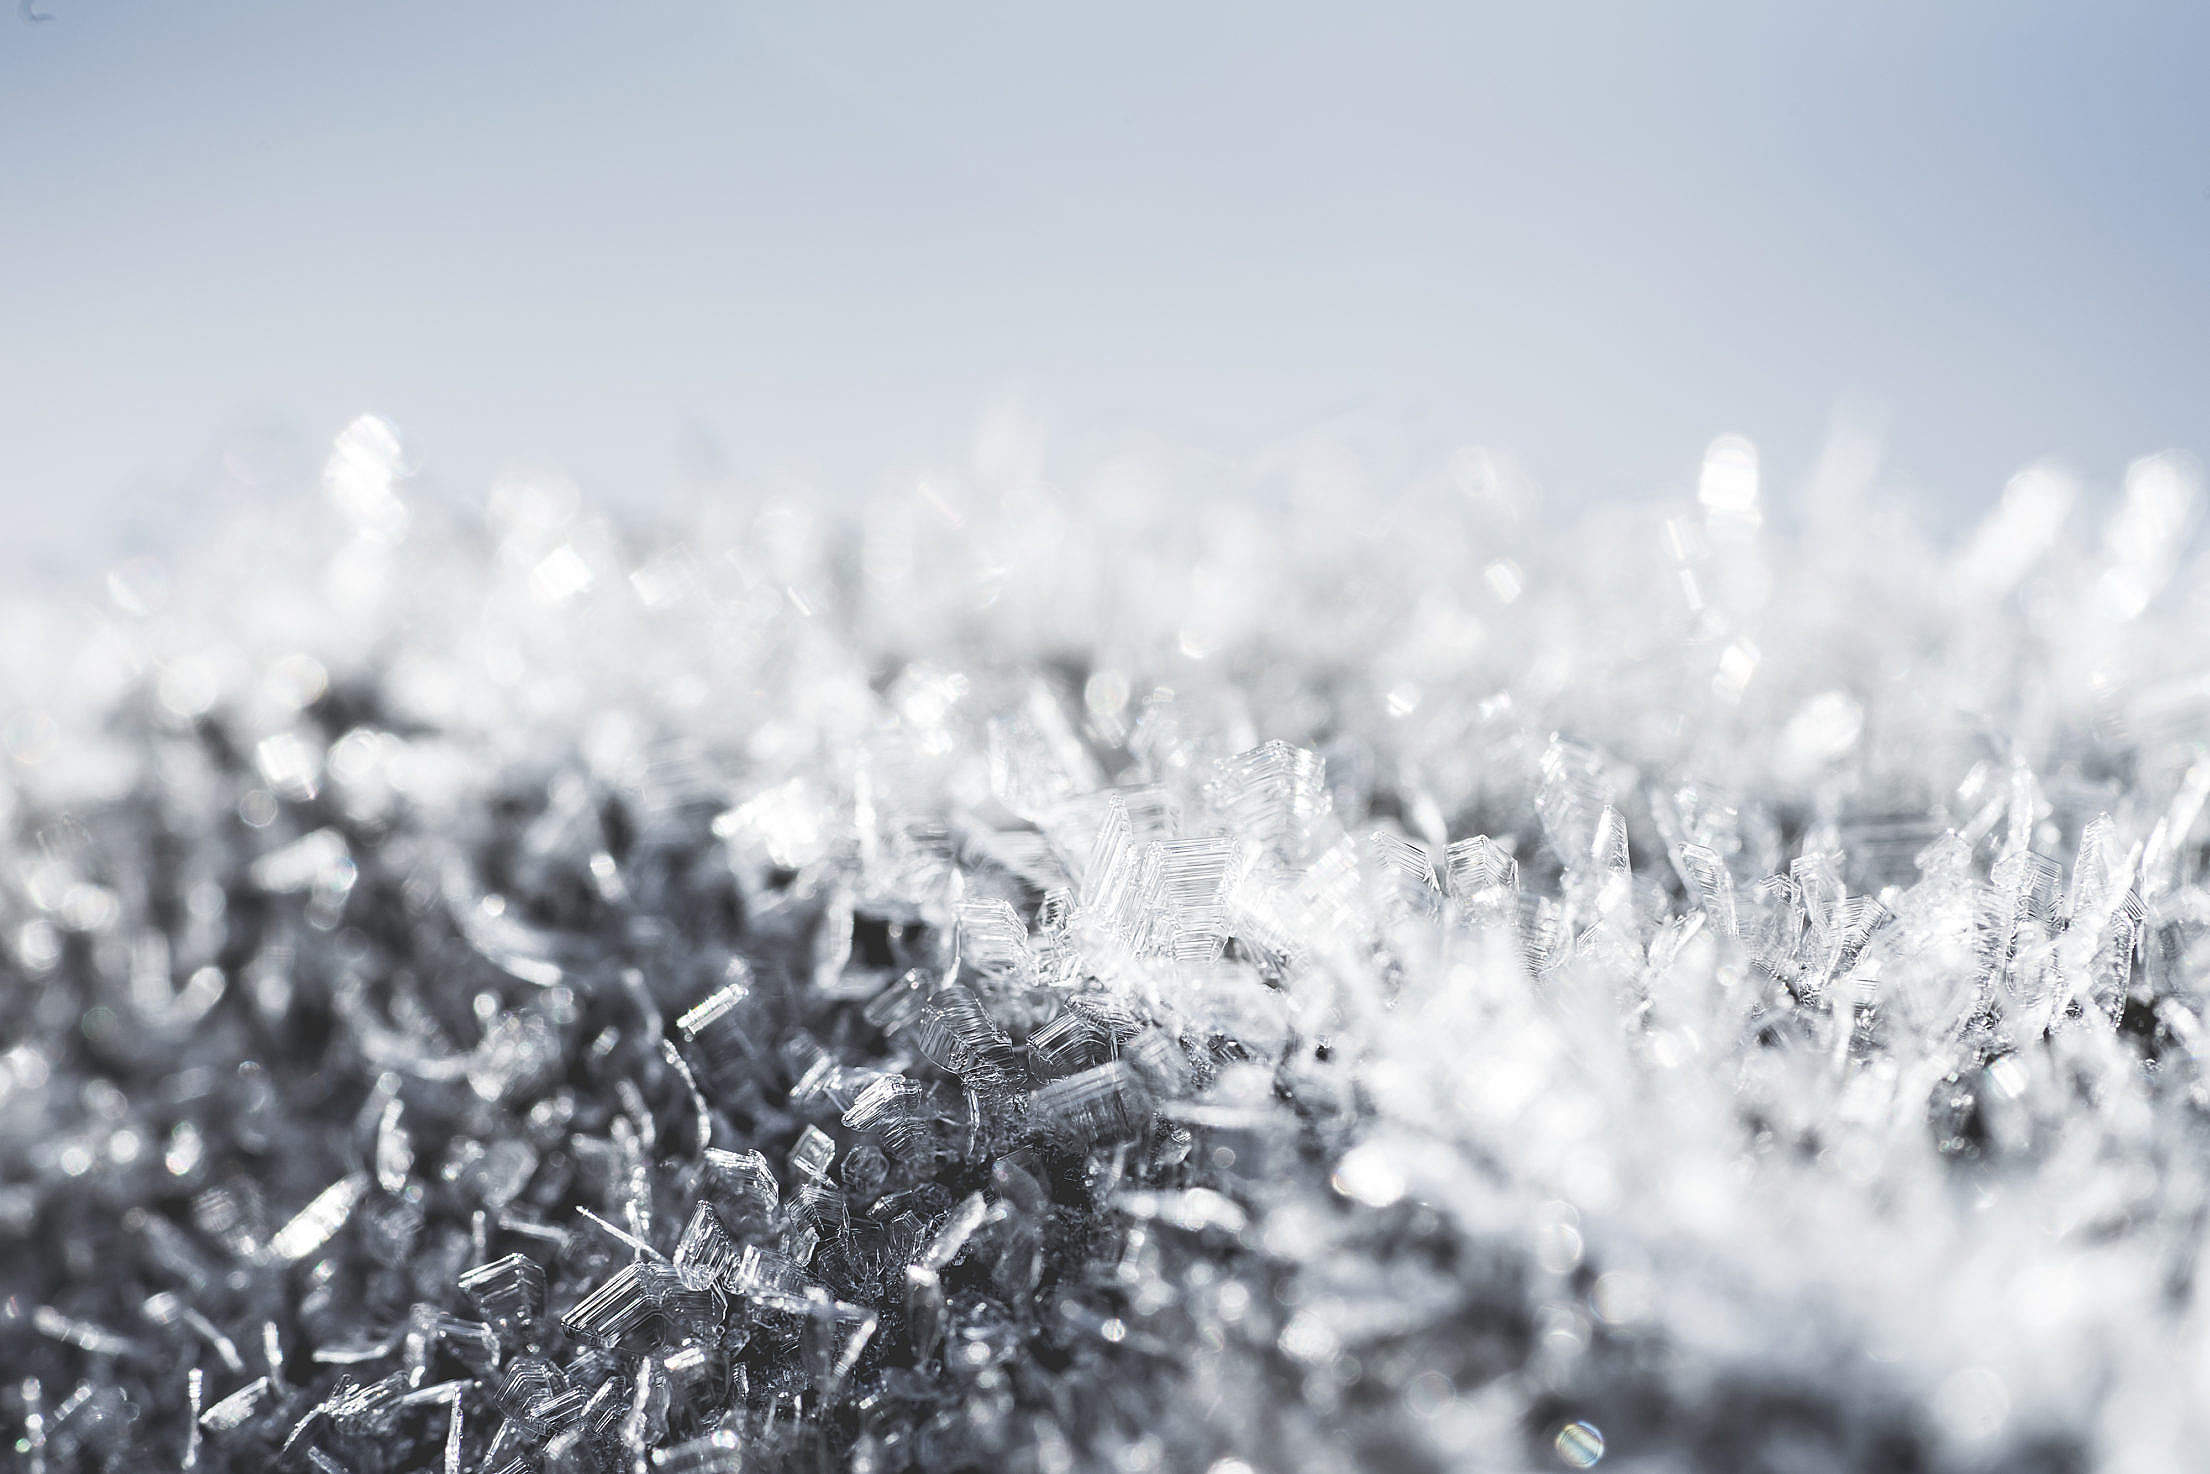 Snowflakes & Hoarfrost Macro Close Up Free Stock Photo